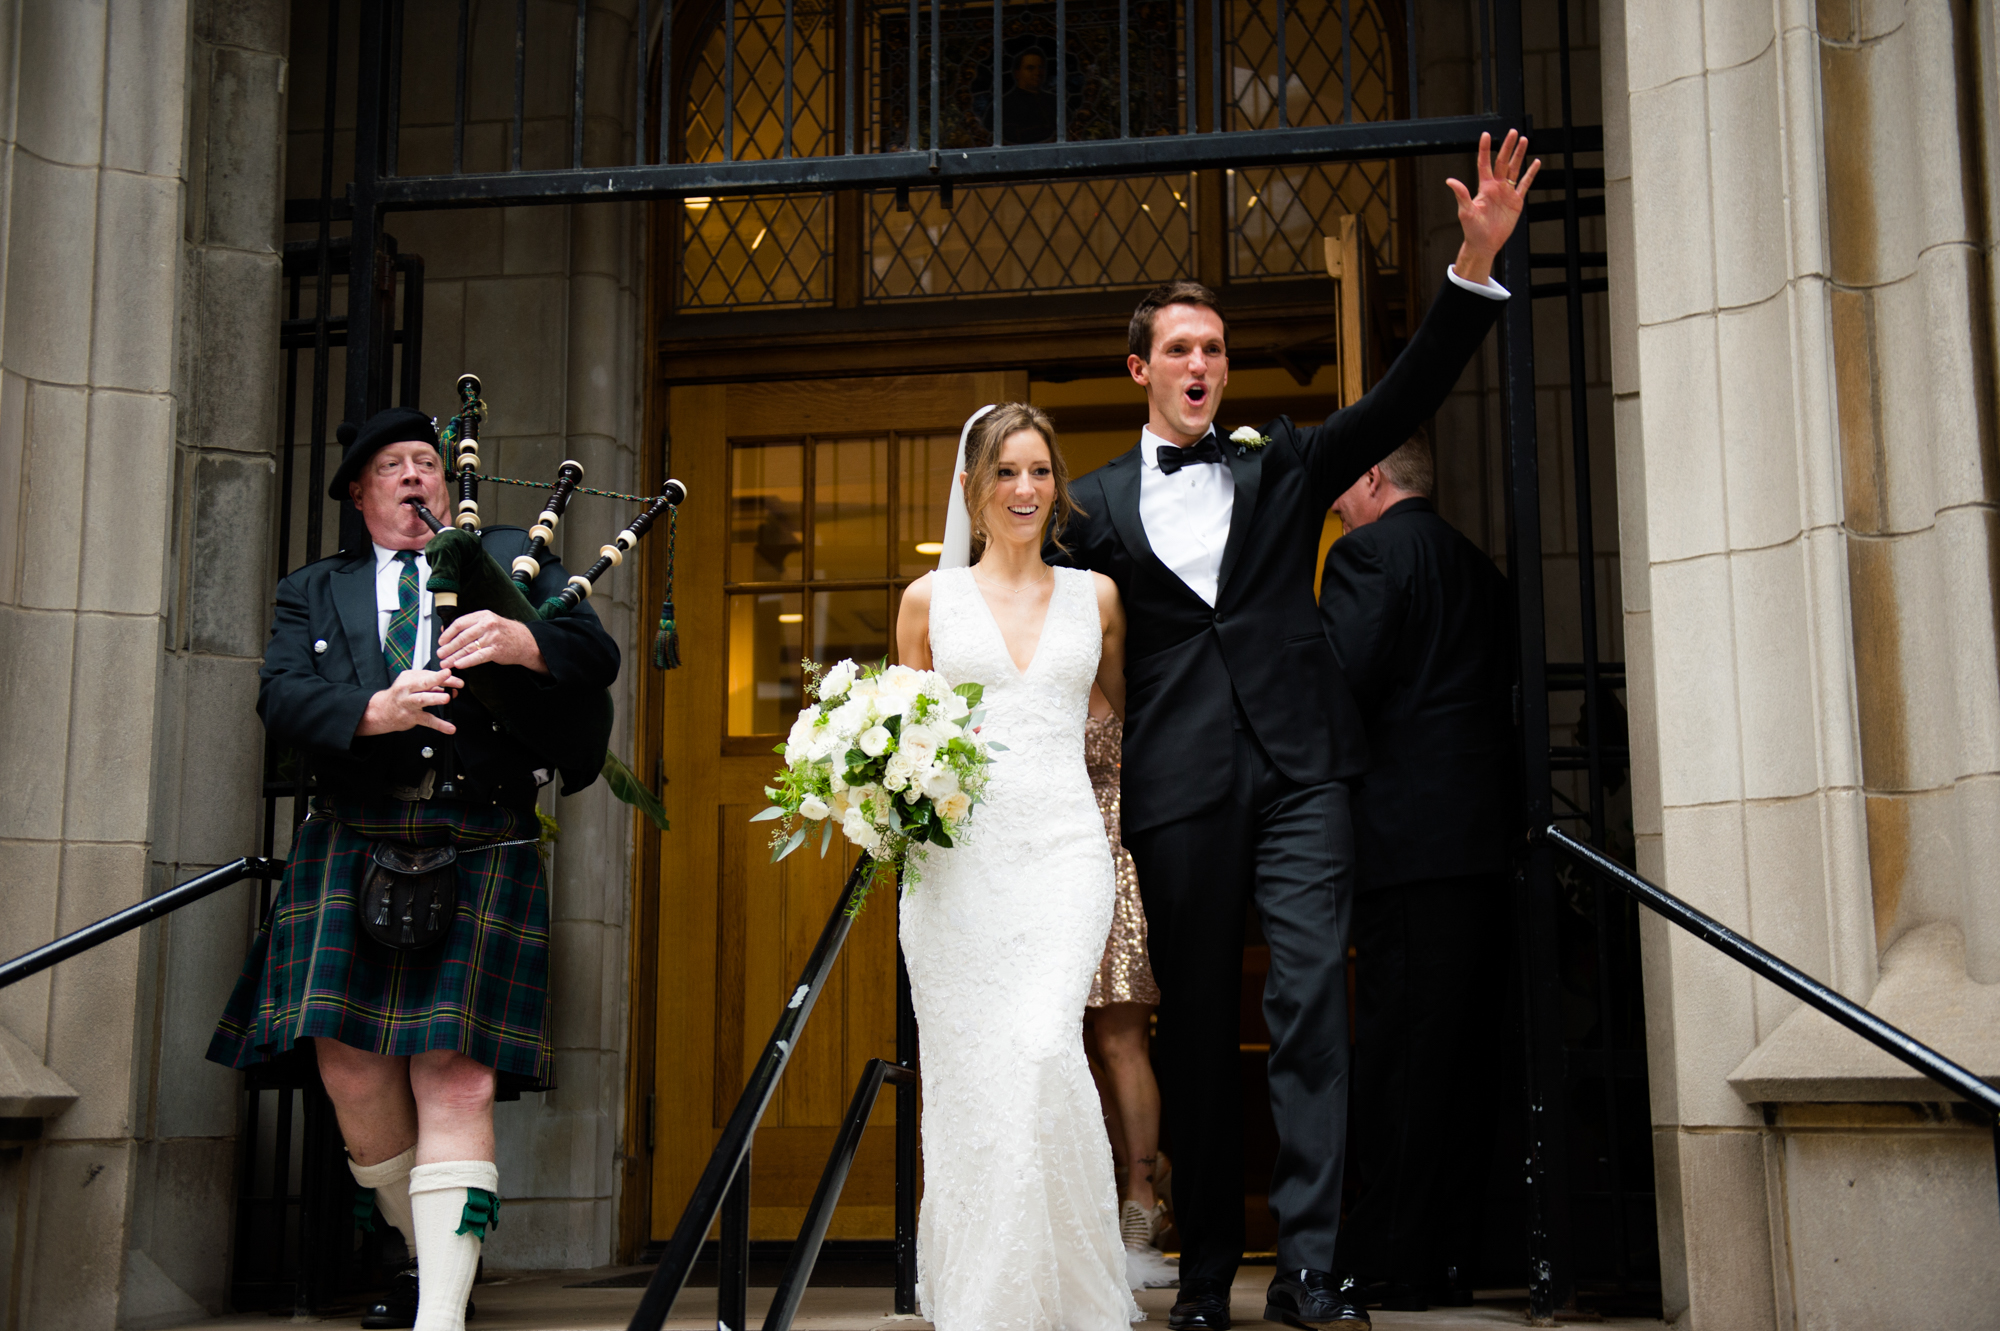 Bride and groom exit wedding ceremony at St James Chapel in Chicago